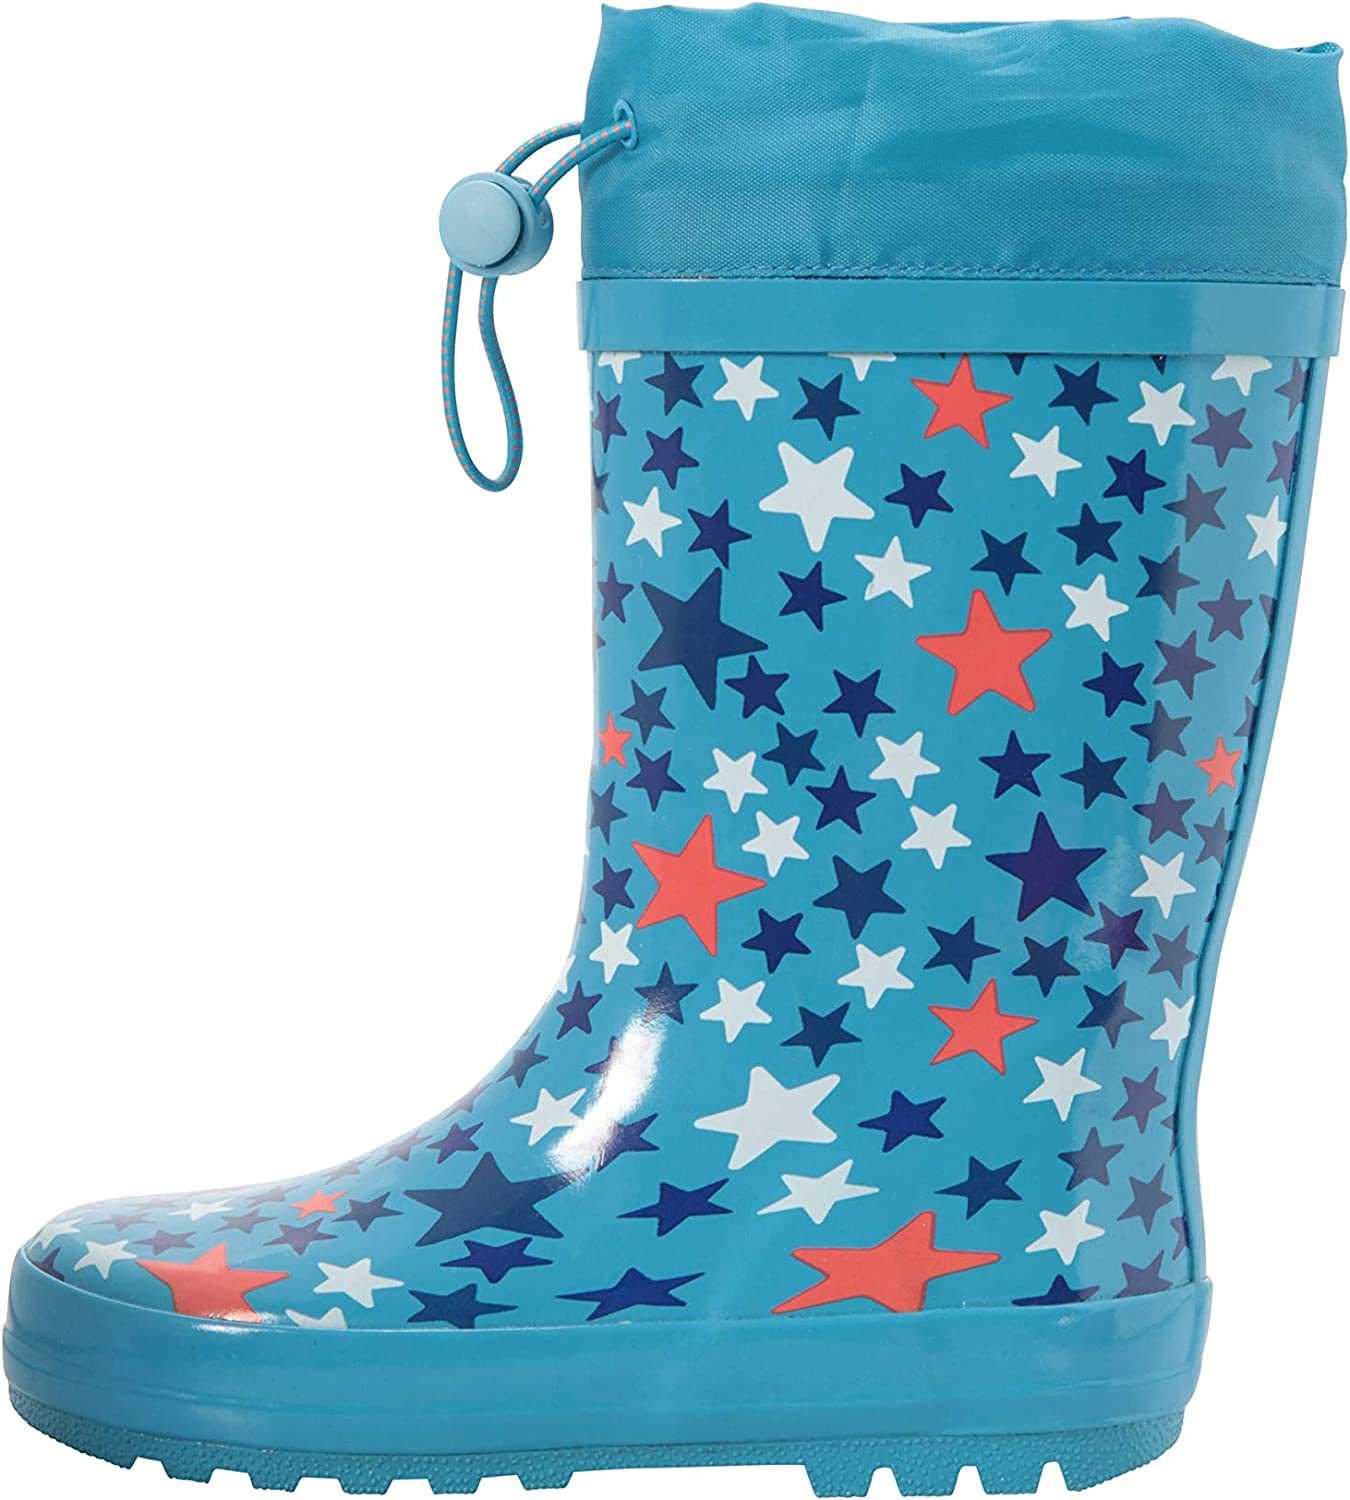 Easy Clean Rain Boots Mountain Warehouse Sunny Rubber Kids Wellies